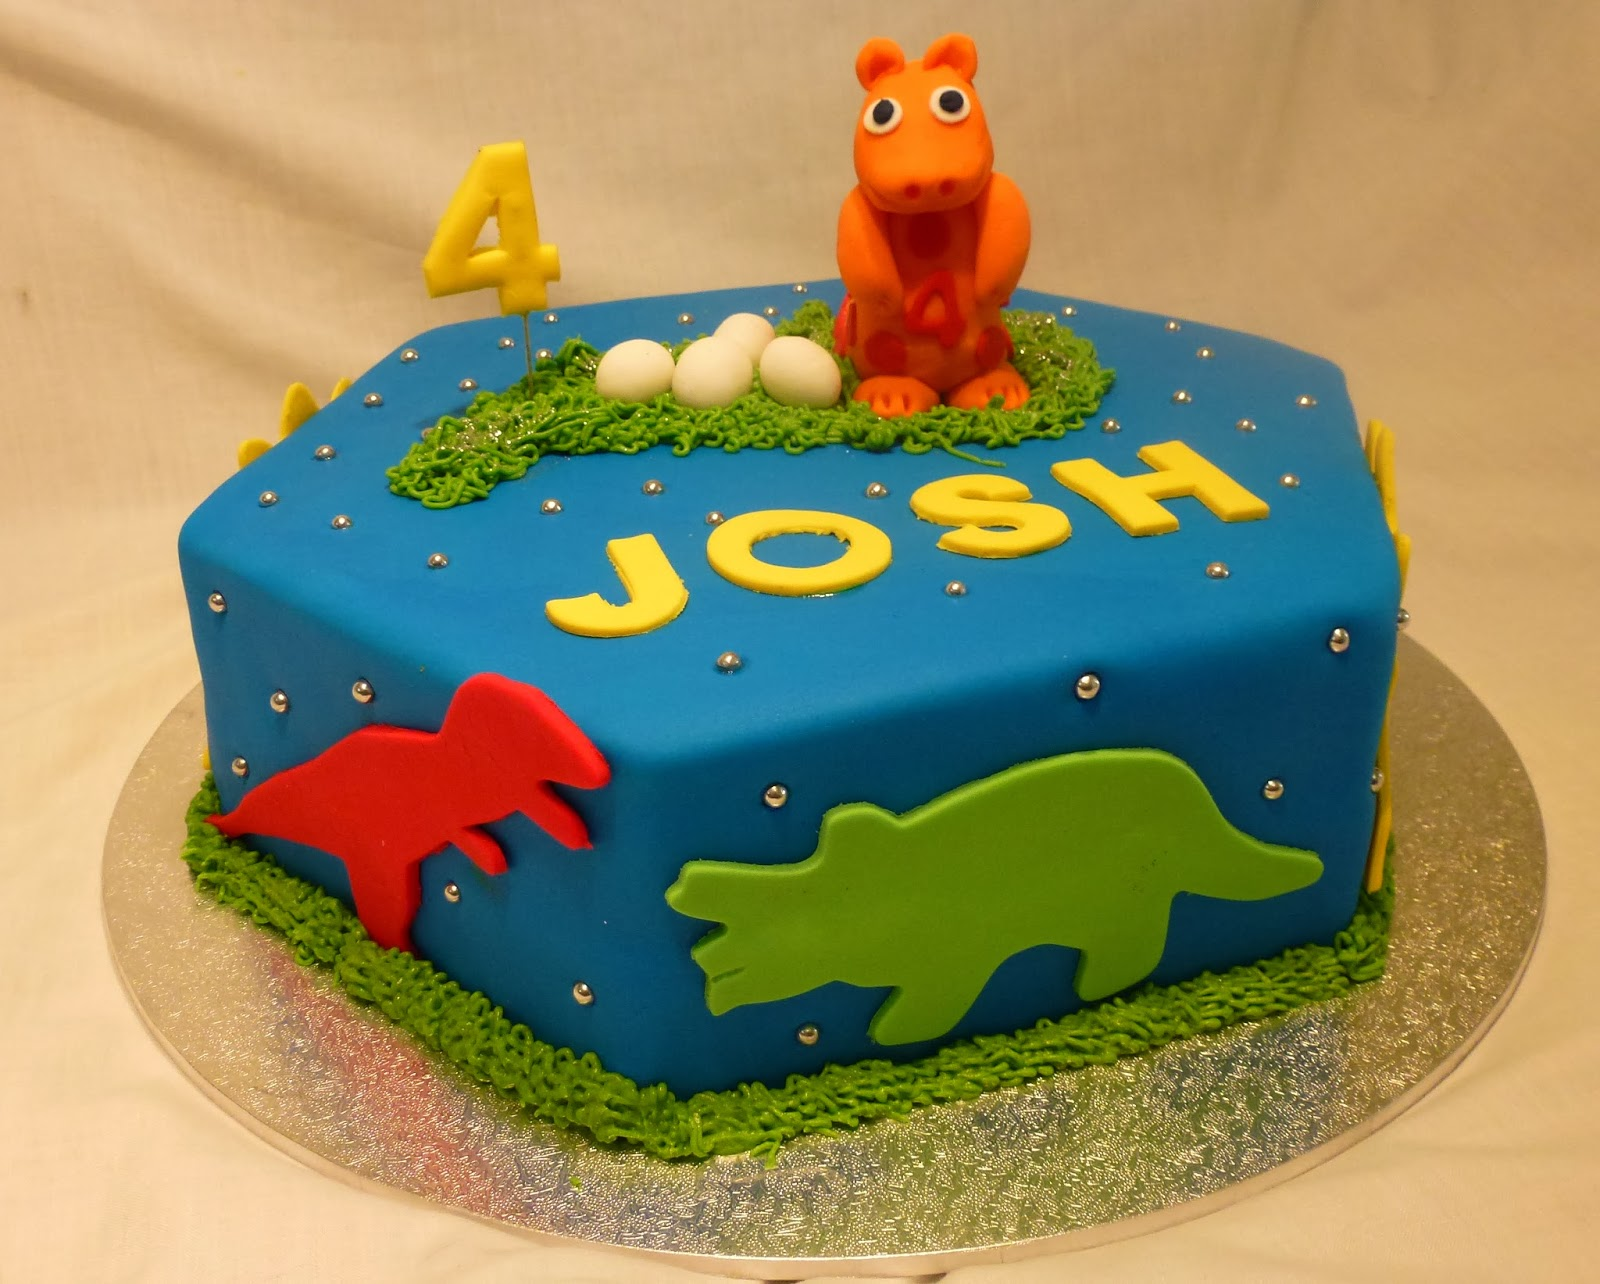 Cakes and Other Delights: Celebrating with Dinosaurs ...